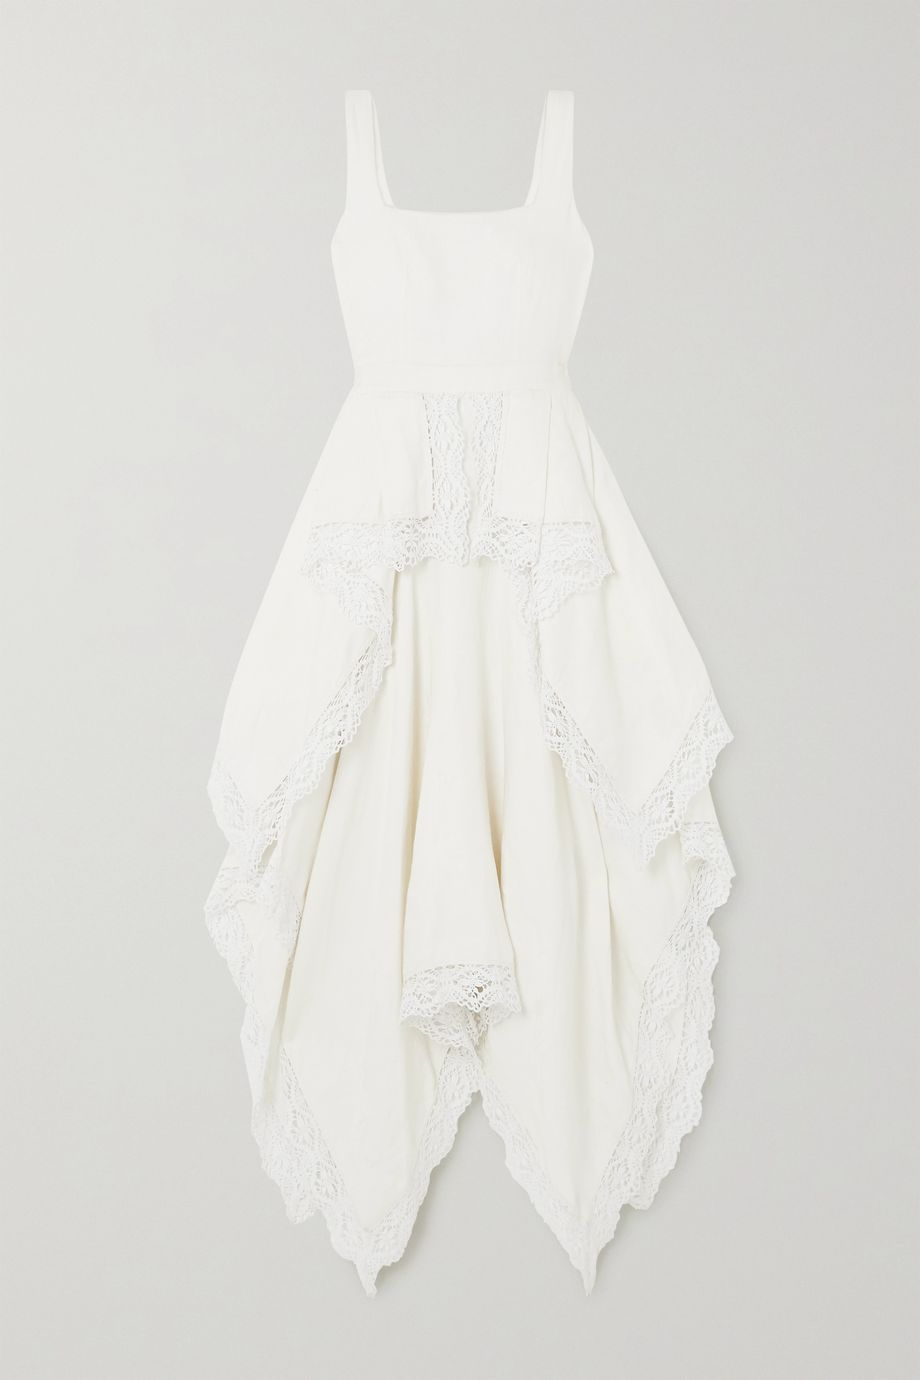 Alexander McQueen Asymmetric crocheted lace-trimmed linen floral-jacquard dress